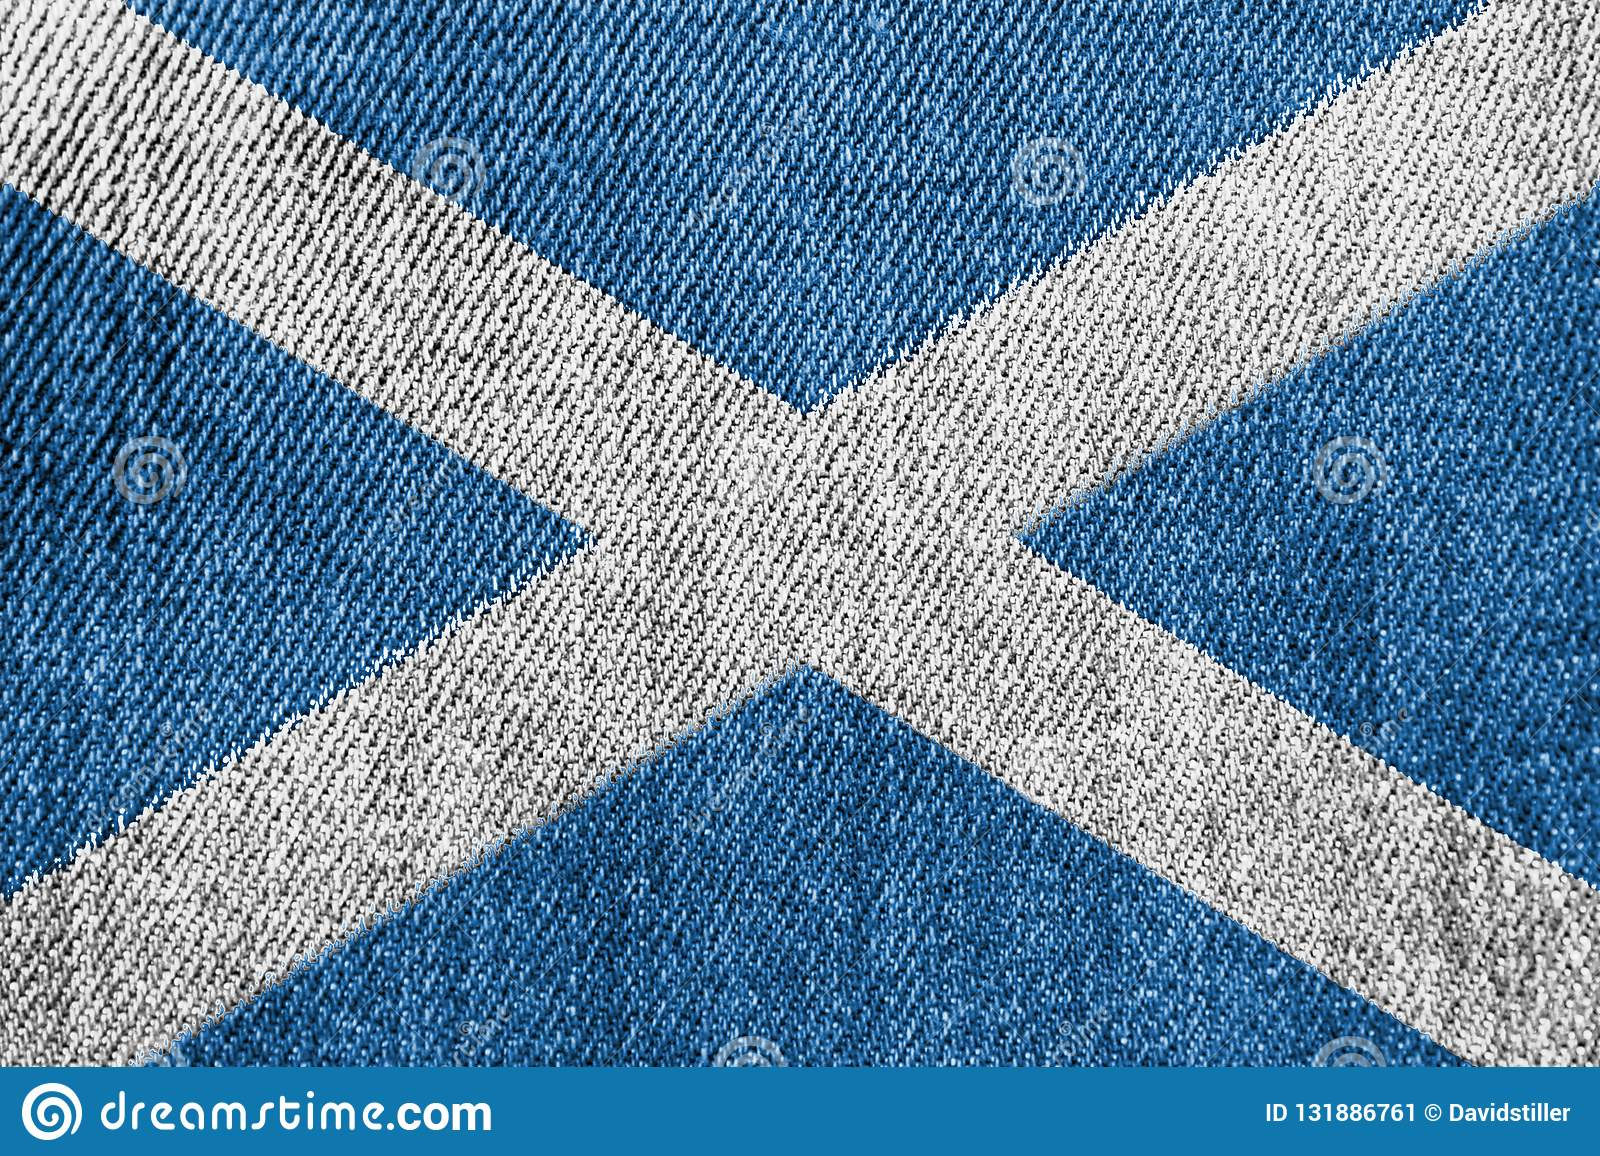 Scotland Textile Industry Or Politics Concept: Scottish Flag Denim Jeans